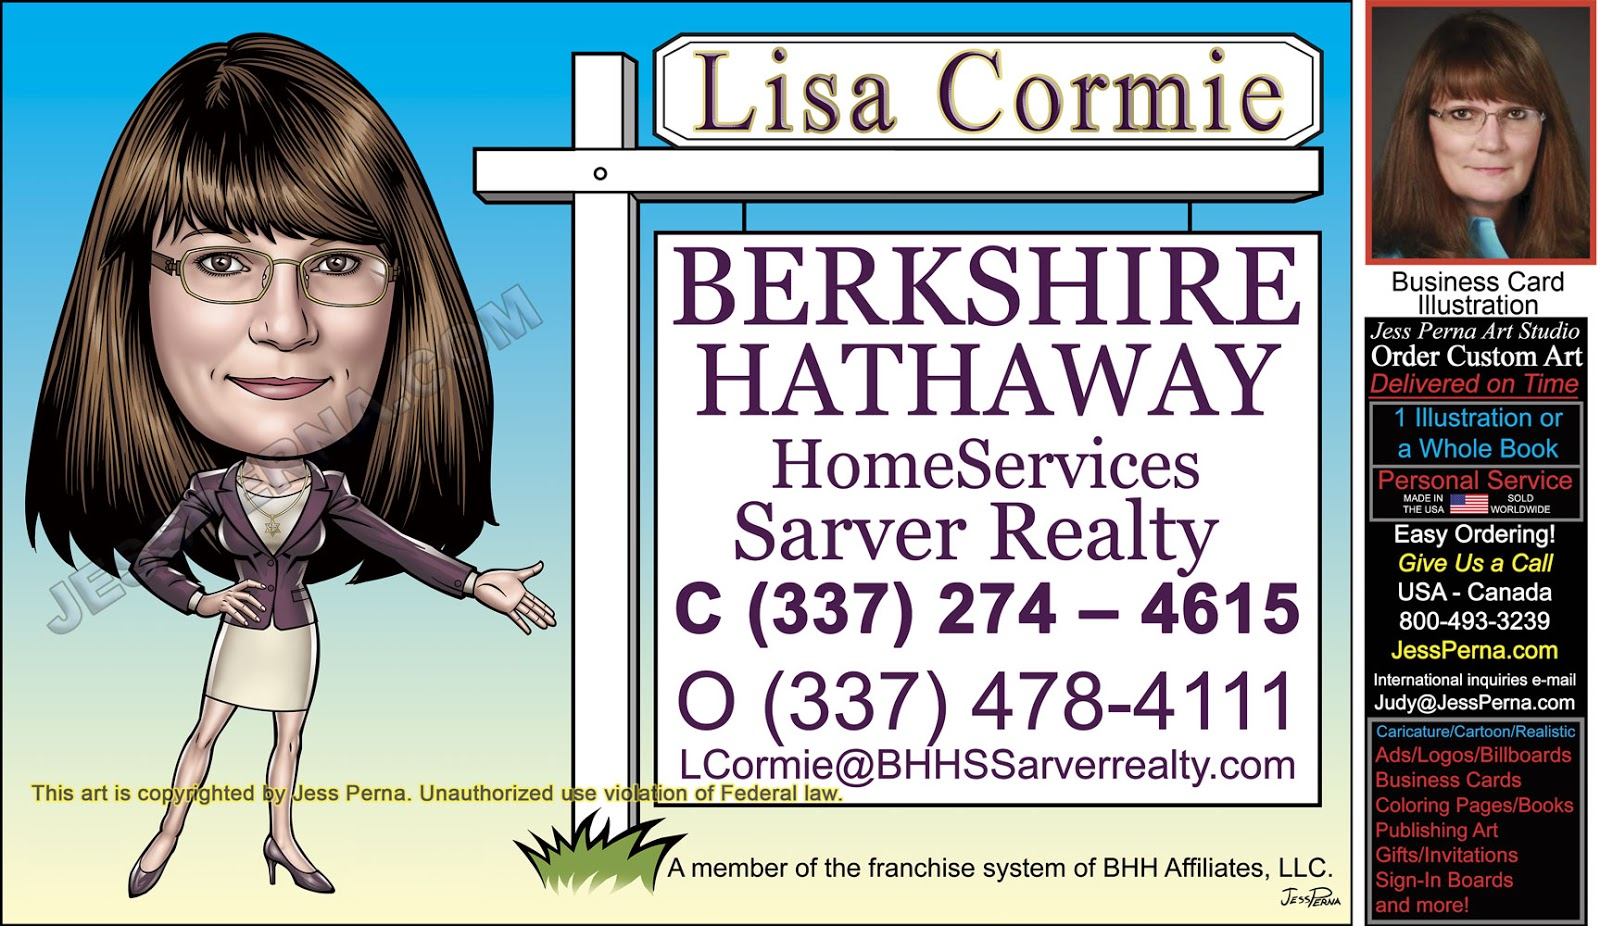 How To Order Ad Cartoons And Caricatures Bh Realty Business Card